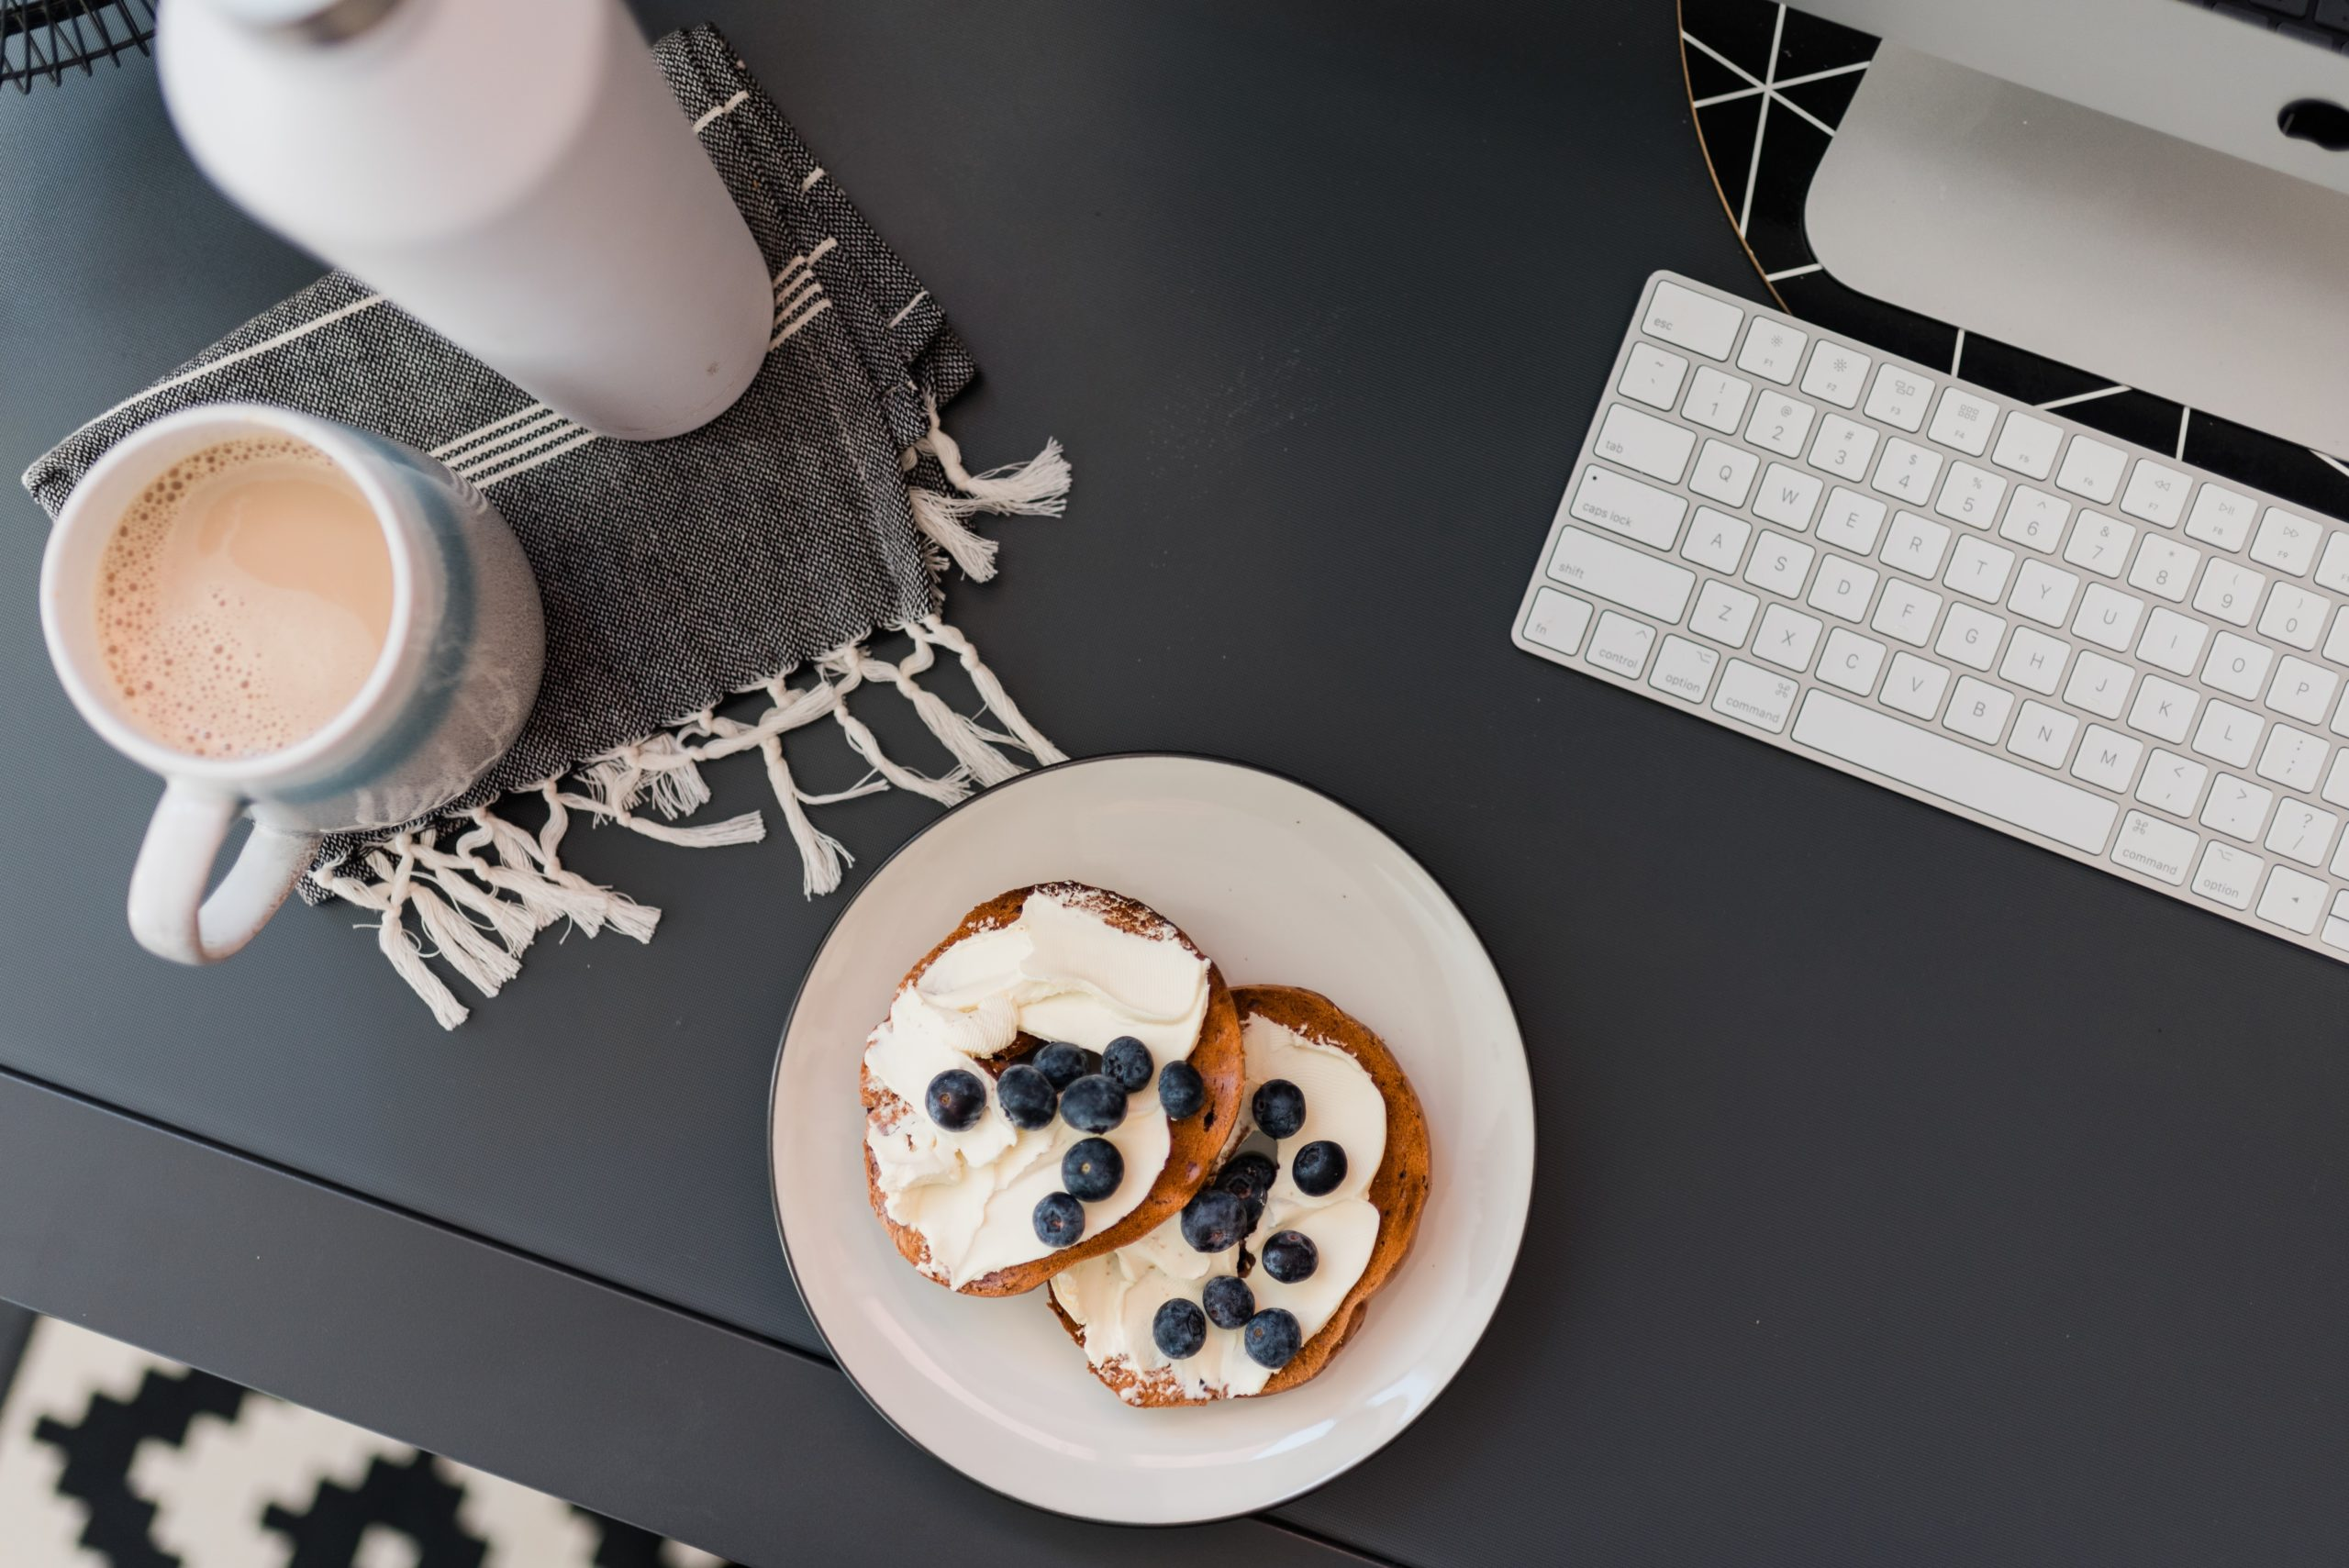 Webinar Tips: Using Food to Increase Webinar Registrations, Attendance, and Engagement